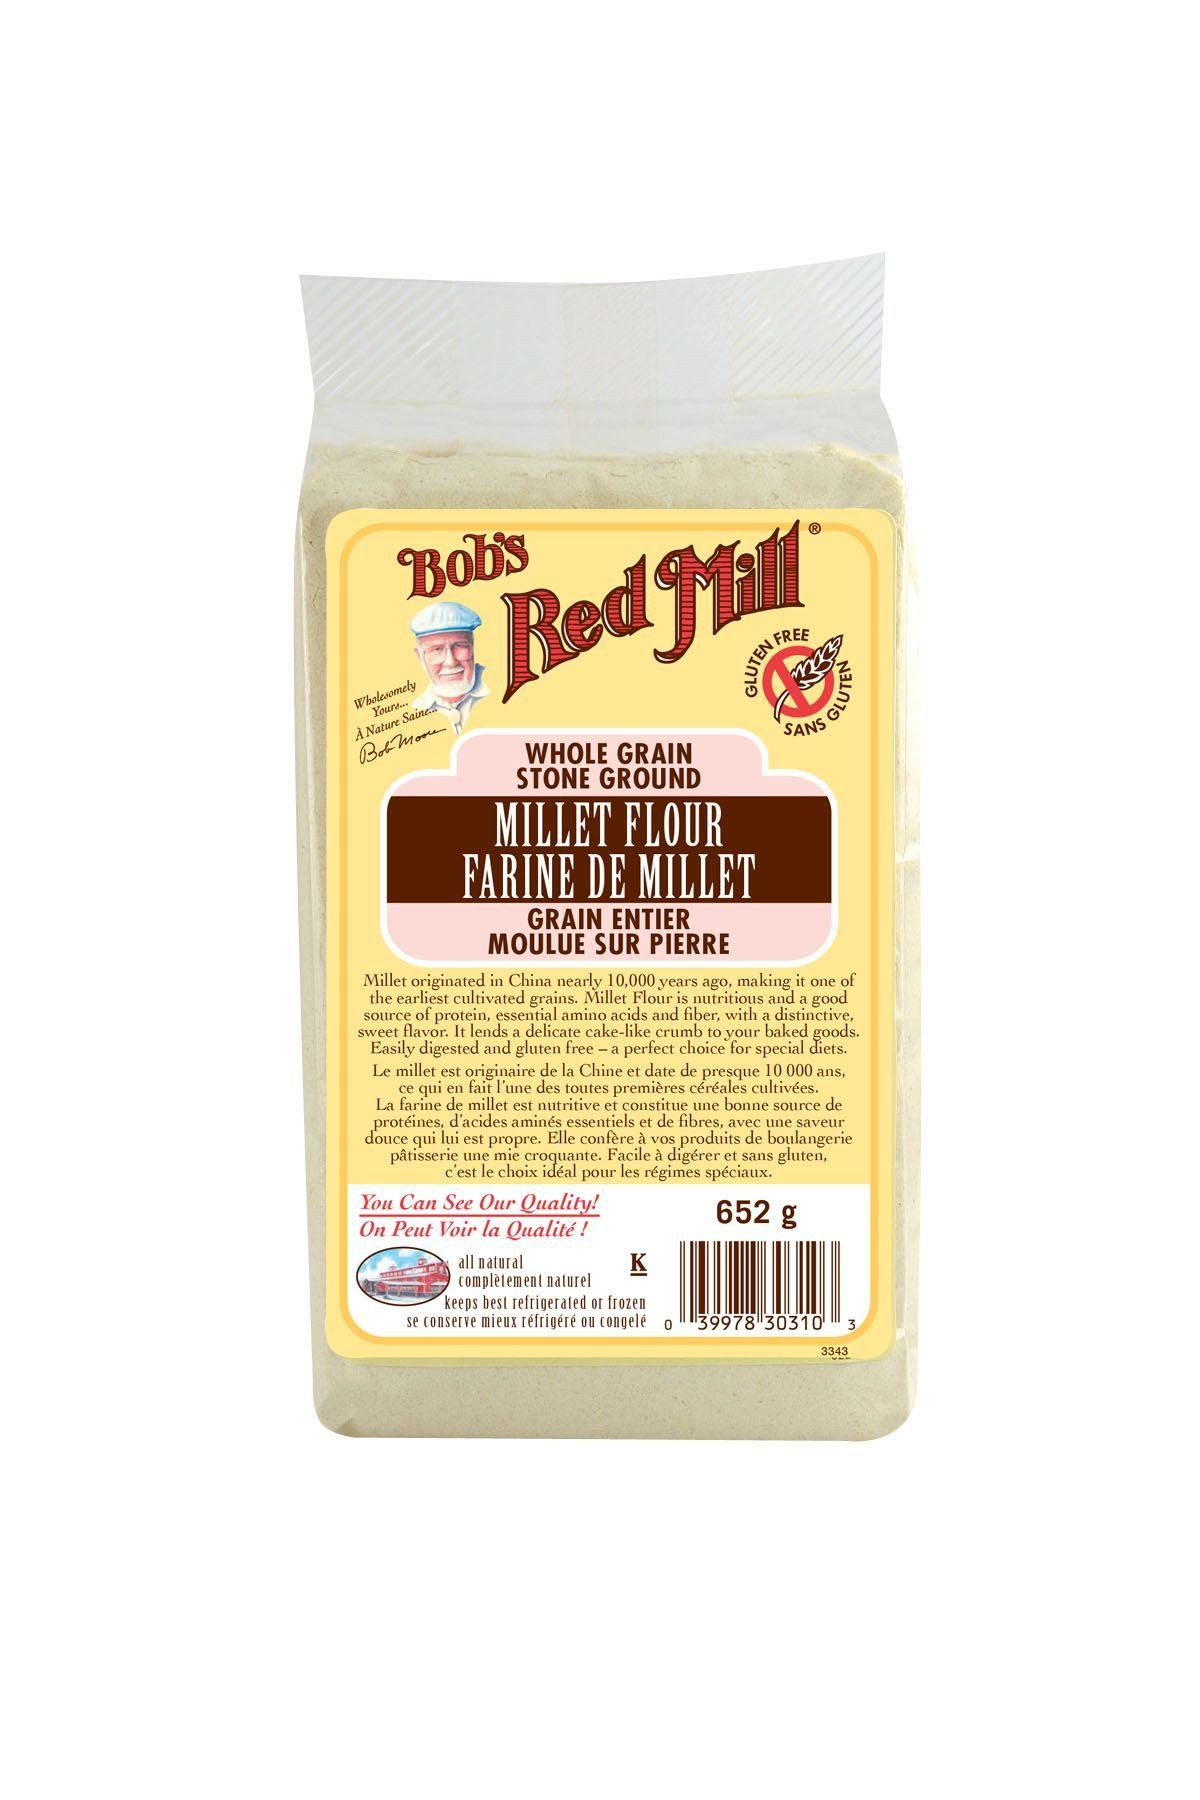 Food & Drink - Bob's Red Mill - Millet Flour, 652g